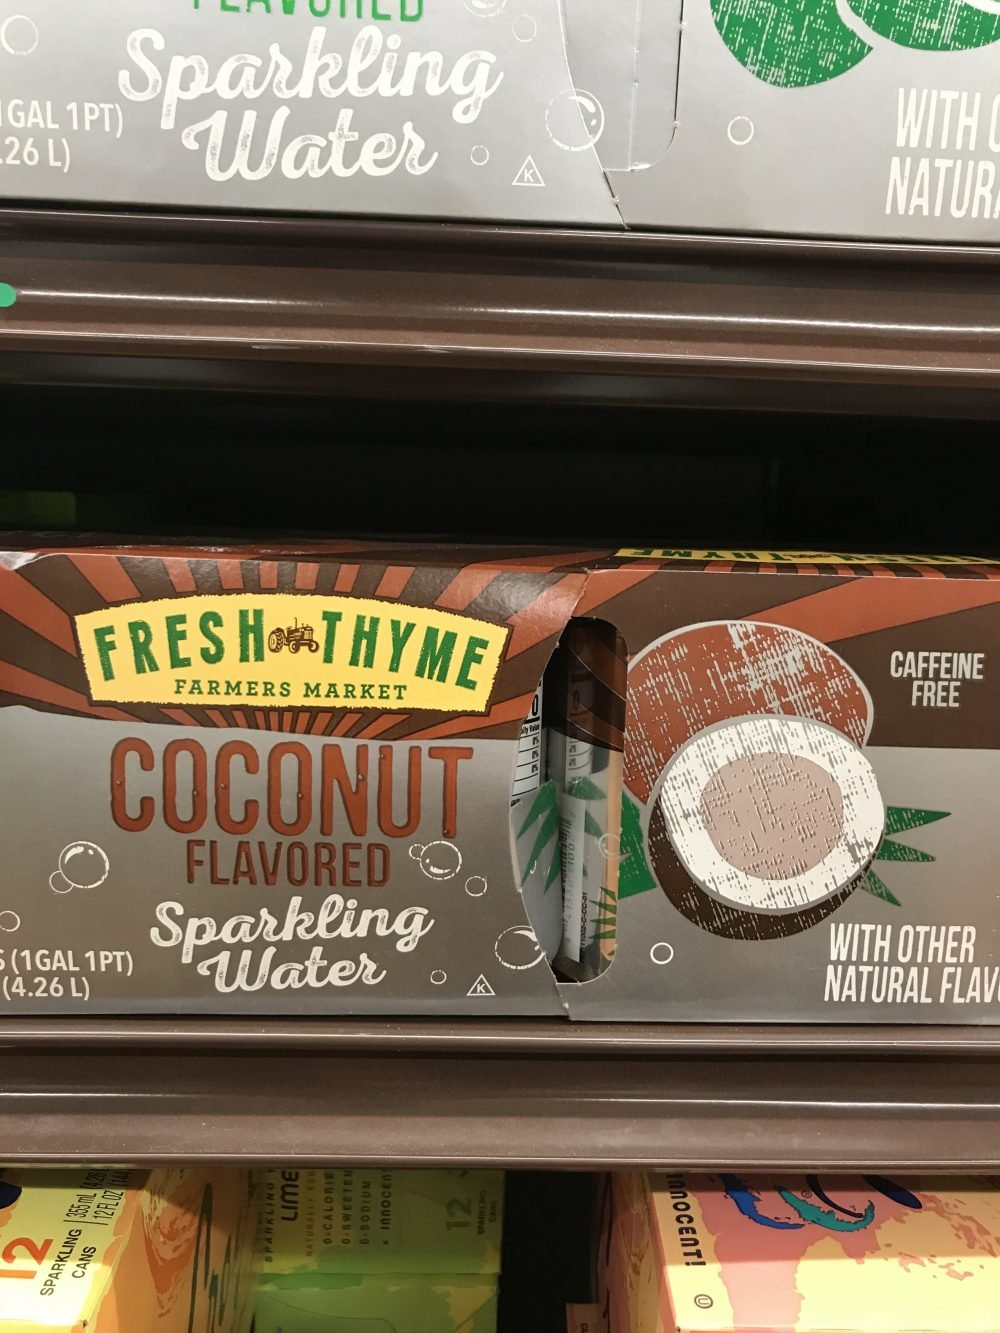 Case of coconut flavored sparkling water cans